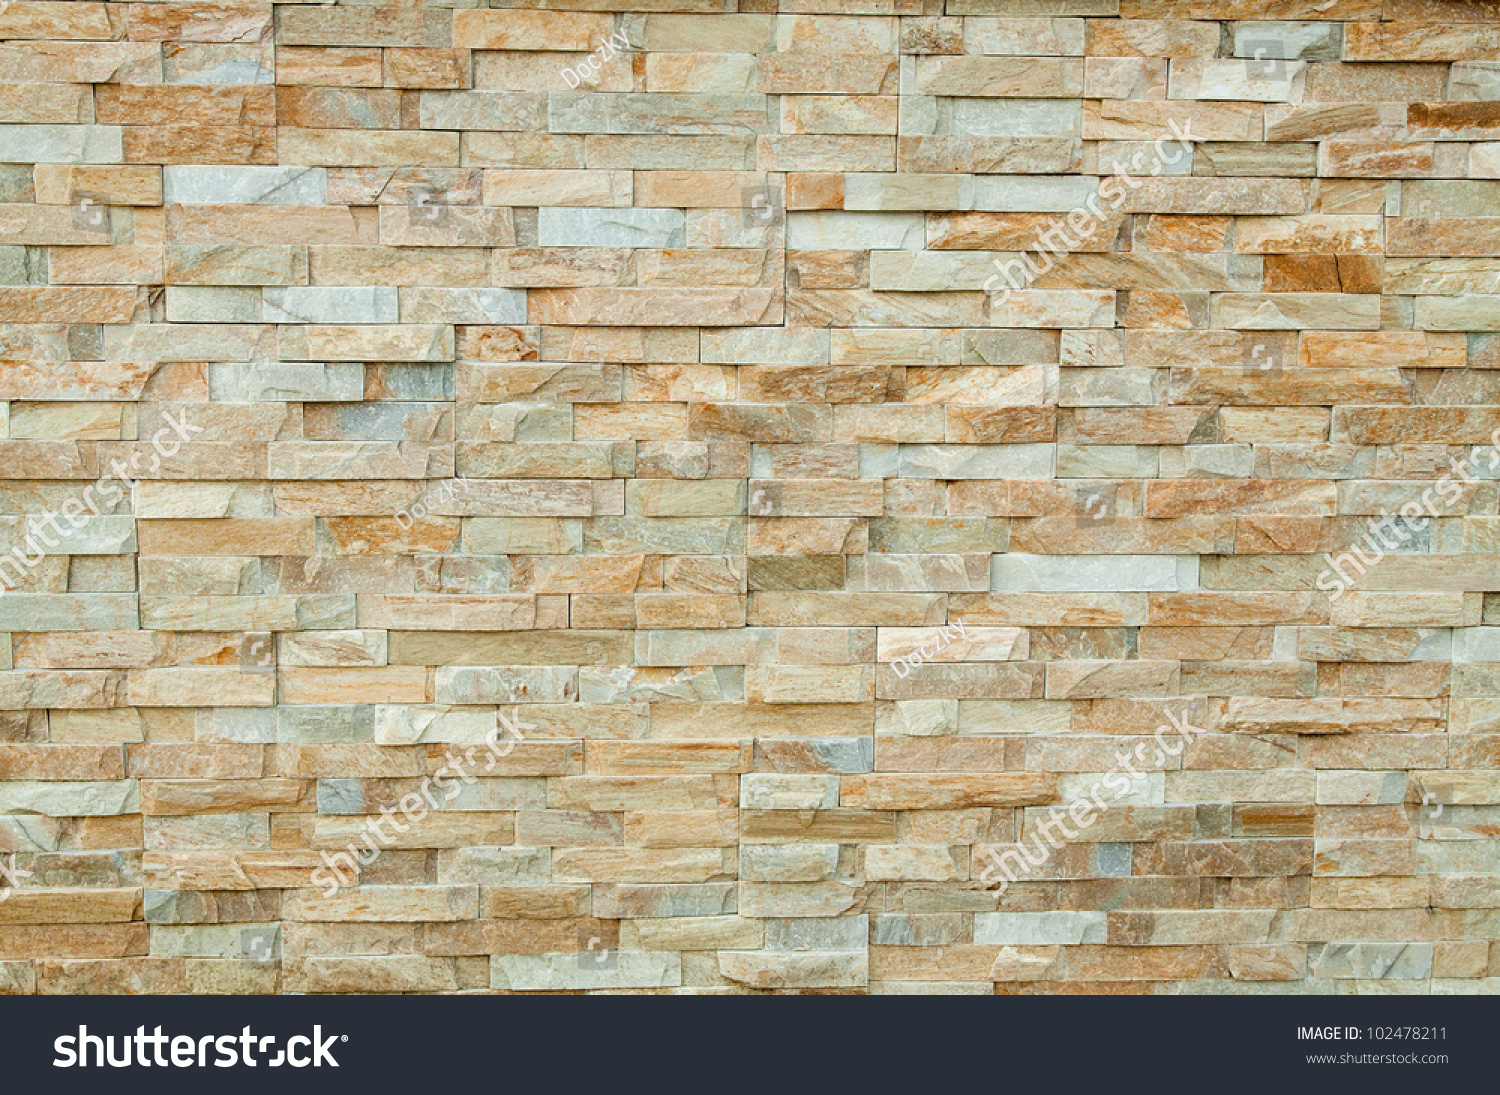 Modern Stone Brick Wall Background Stone Stock Photo